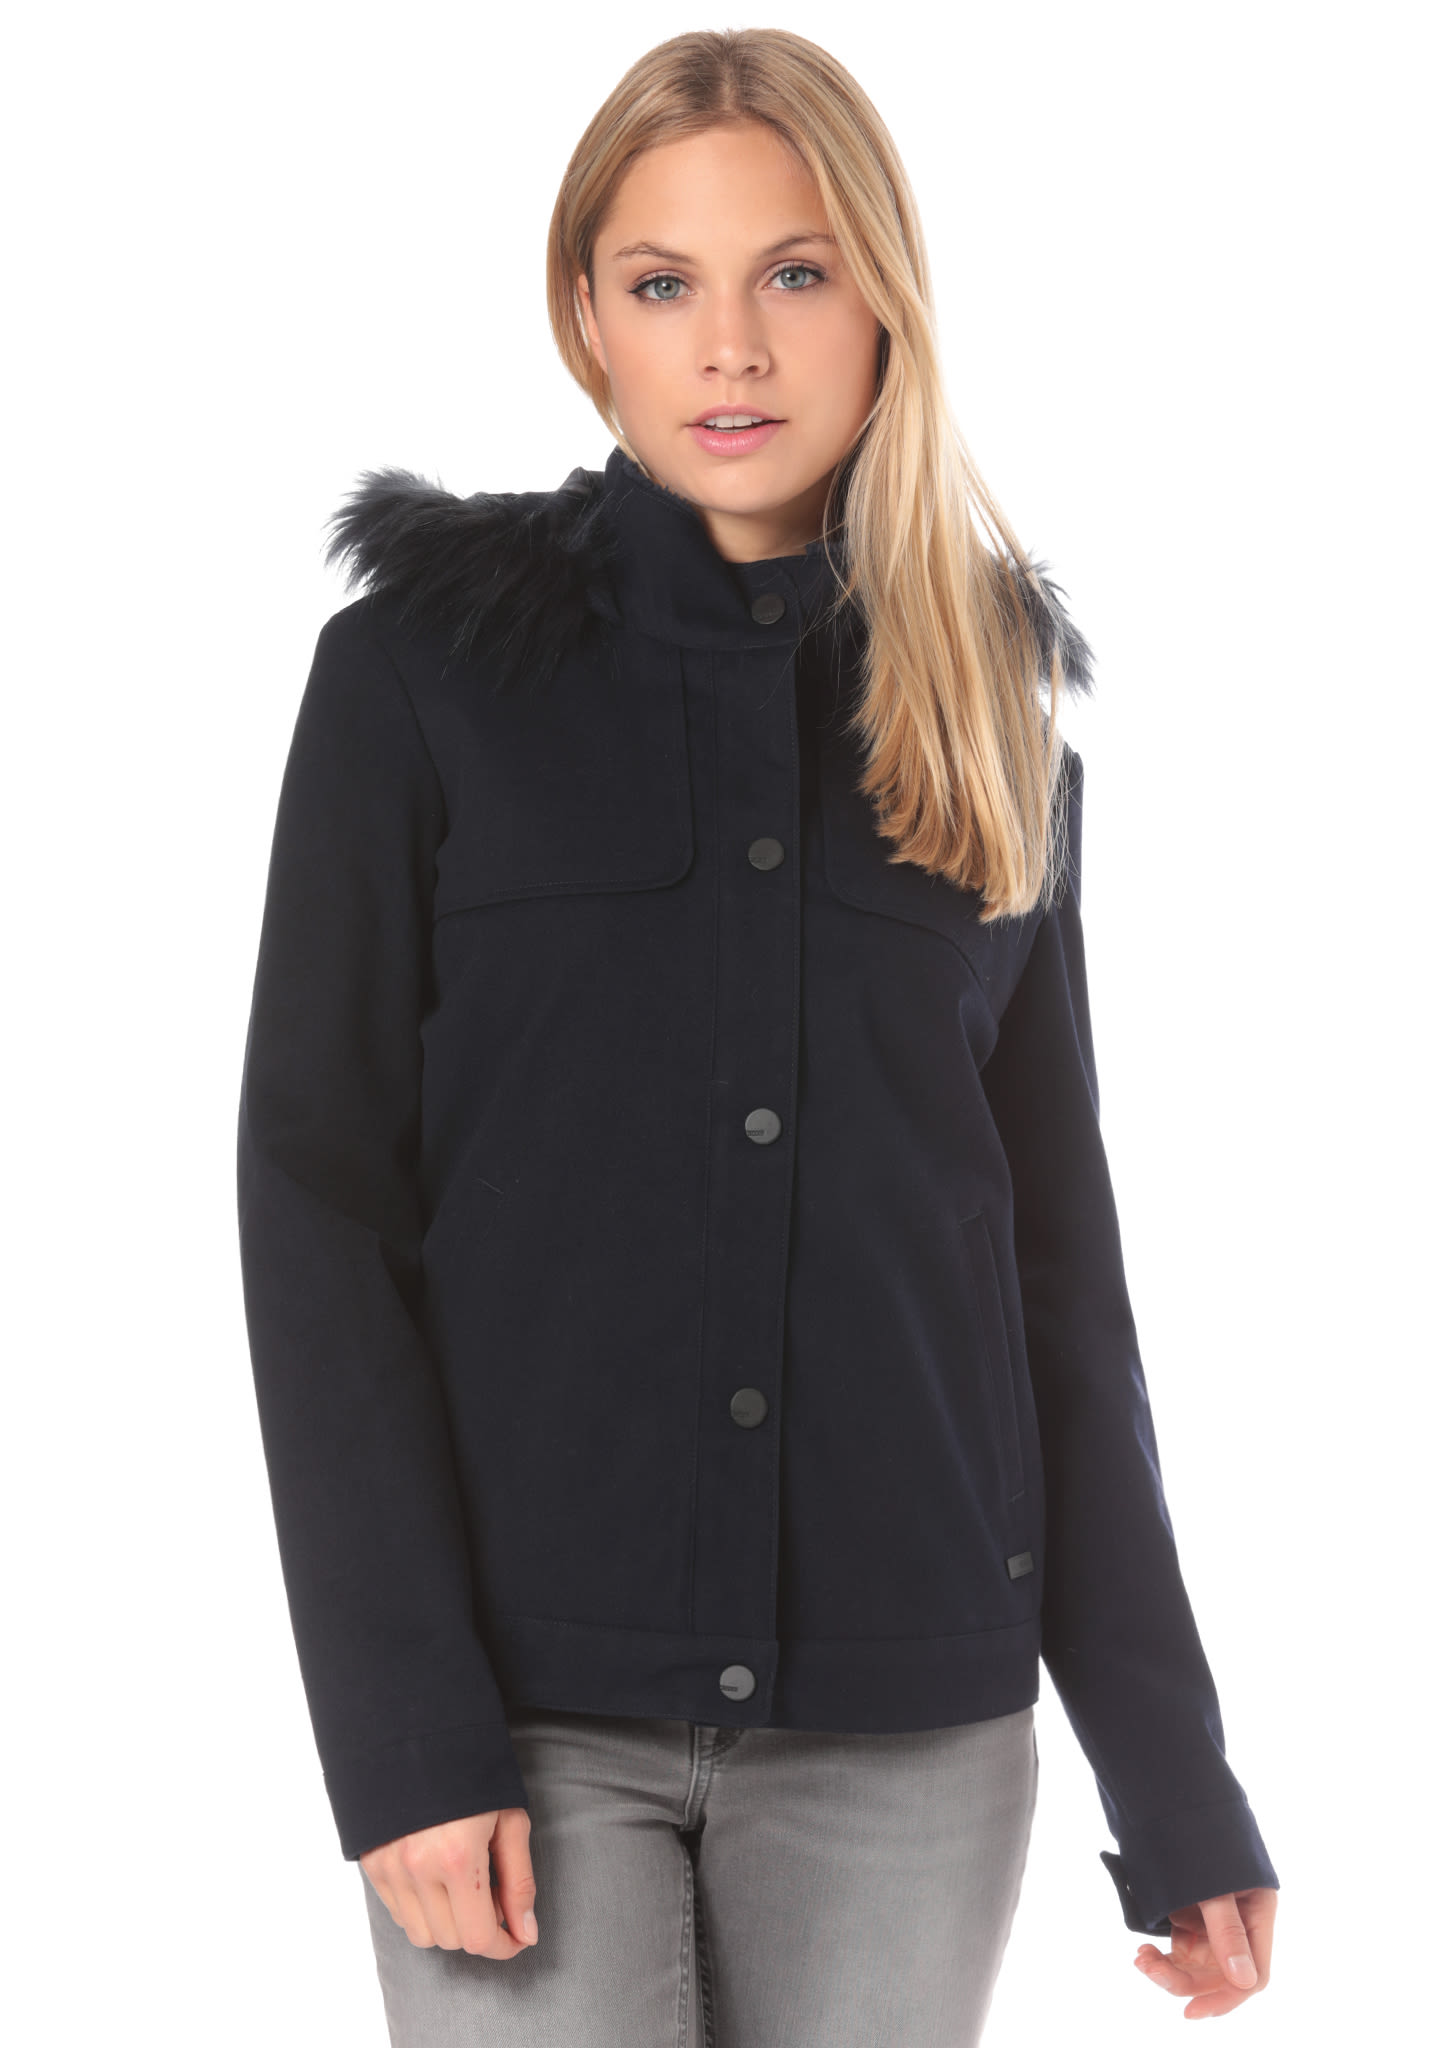 4718bd71886 Roxy Chic And Snow - Chaqueta para Mujeres - Azul - Planet Sports